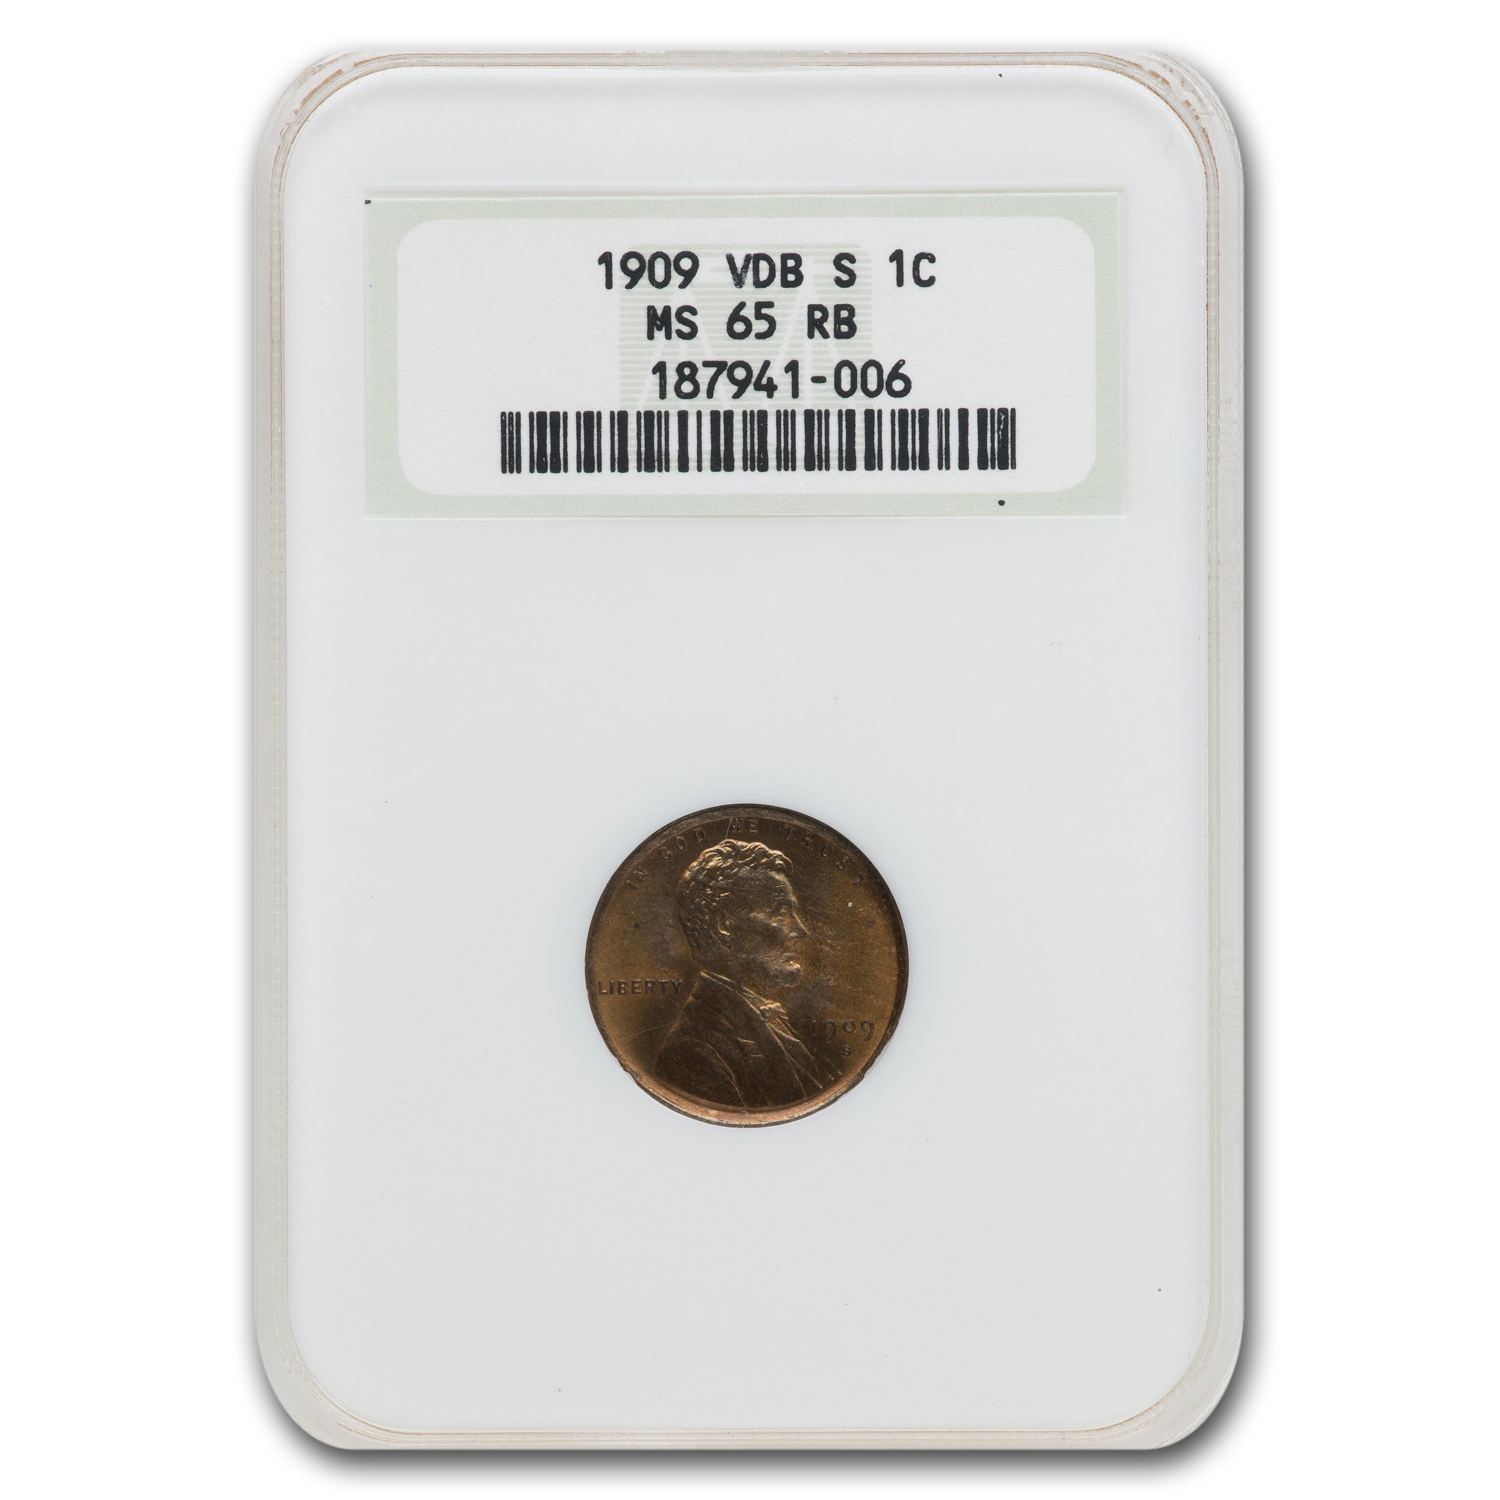 1909 VDB Lincoln Cent MS-65 NGC (Red/Brown)